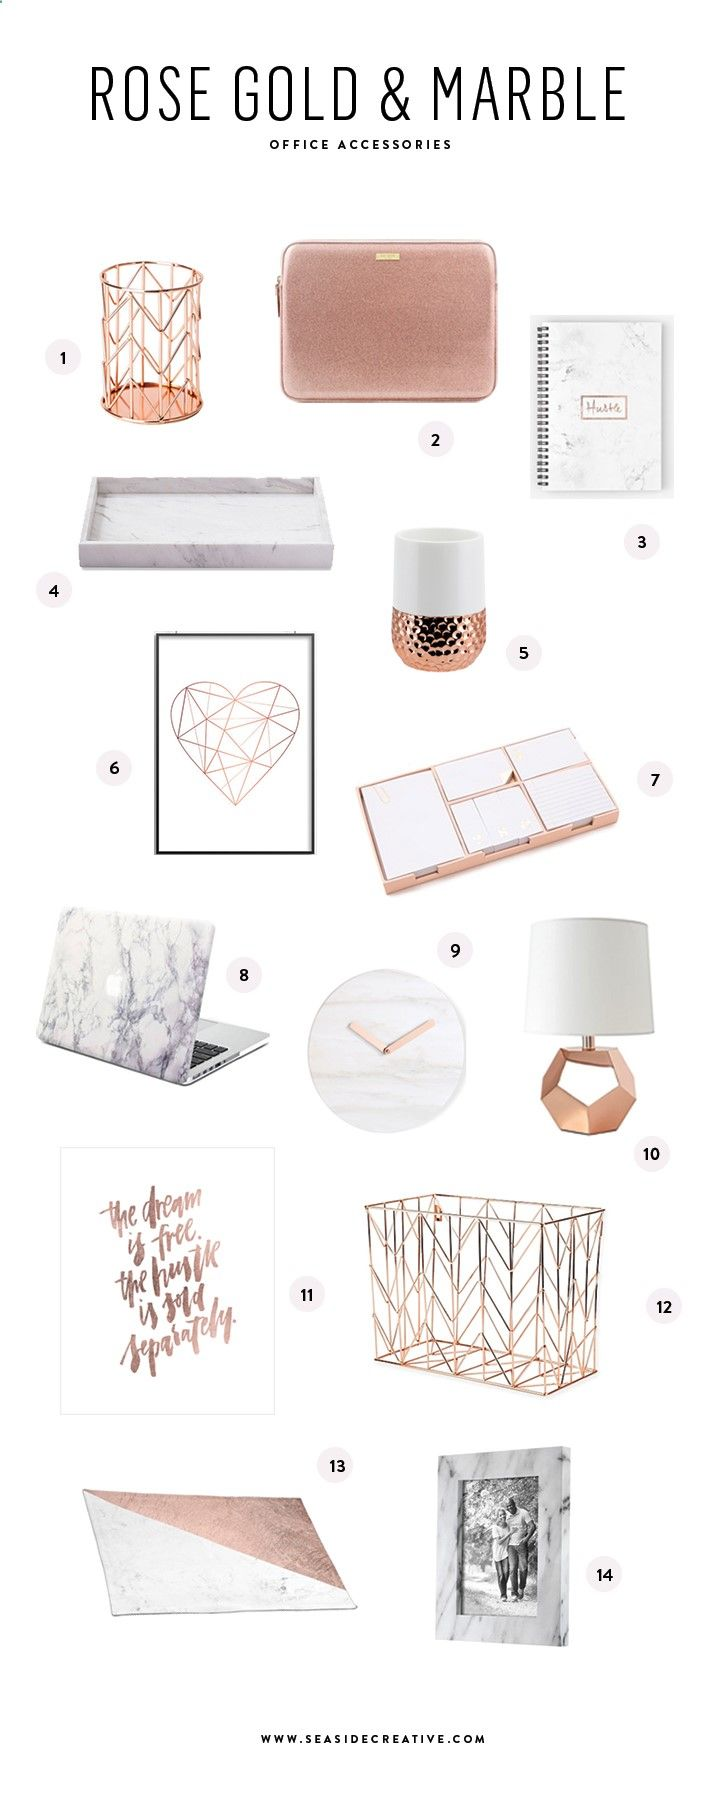 Seaside Creative Blog Beautiful Rose Gold Marble Office Accessories